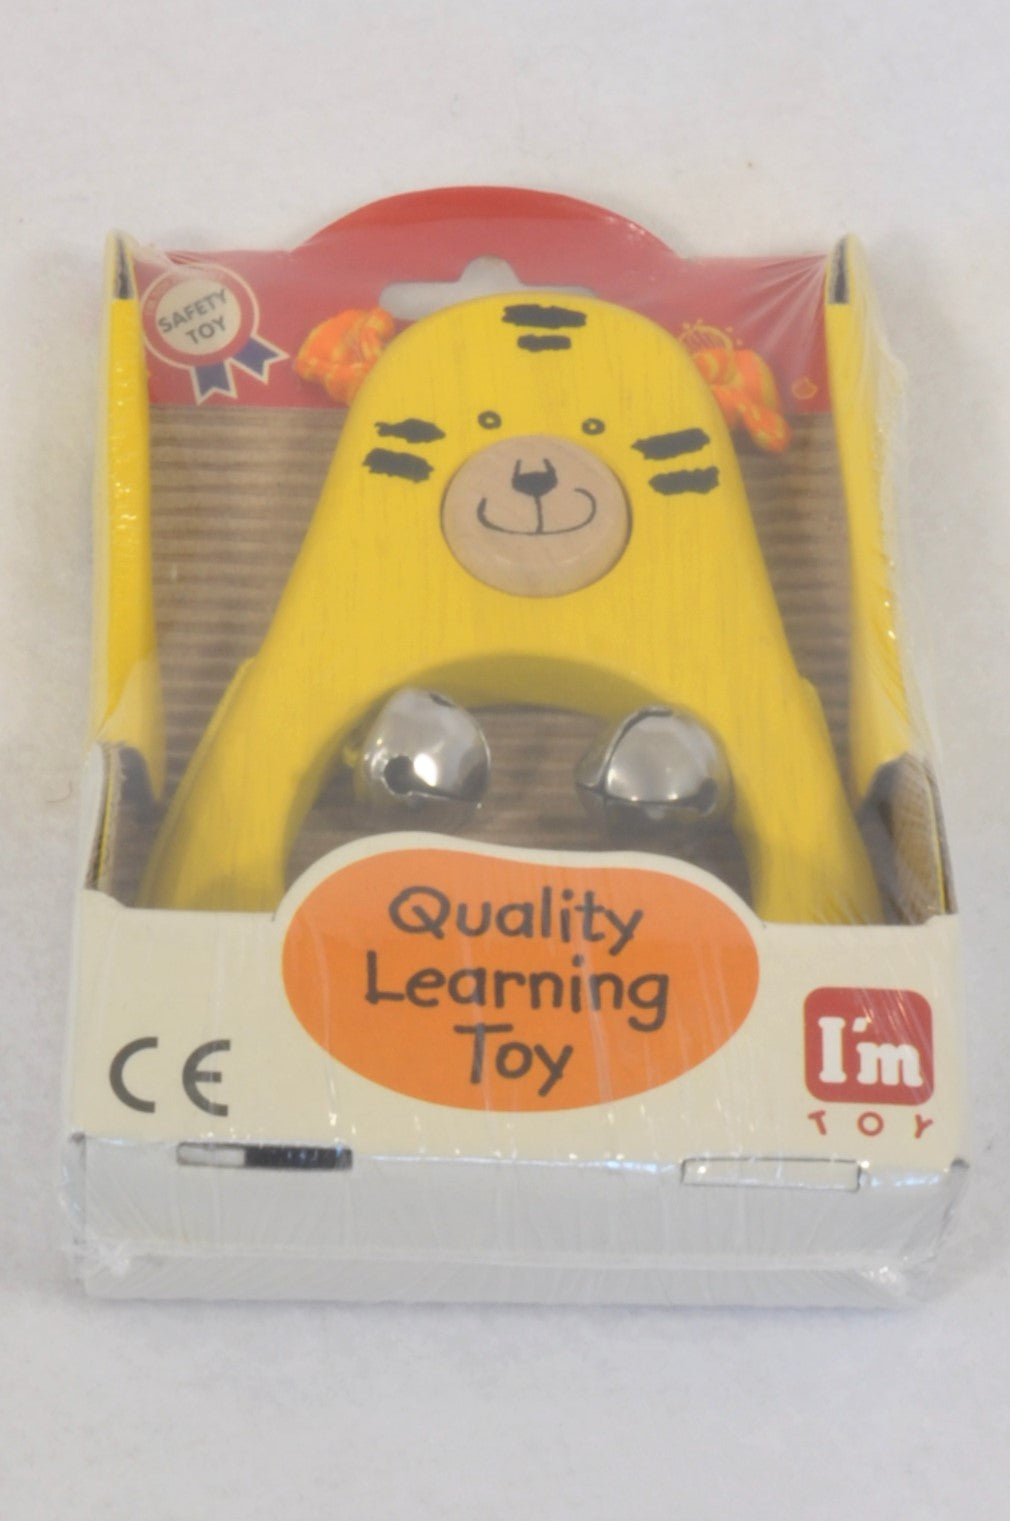 New I'm Toy Yellow Tiger Bell Musical Instrument Toy Unisex 1-6 years